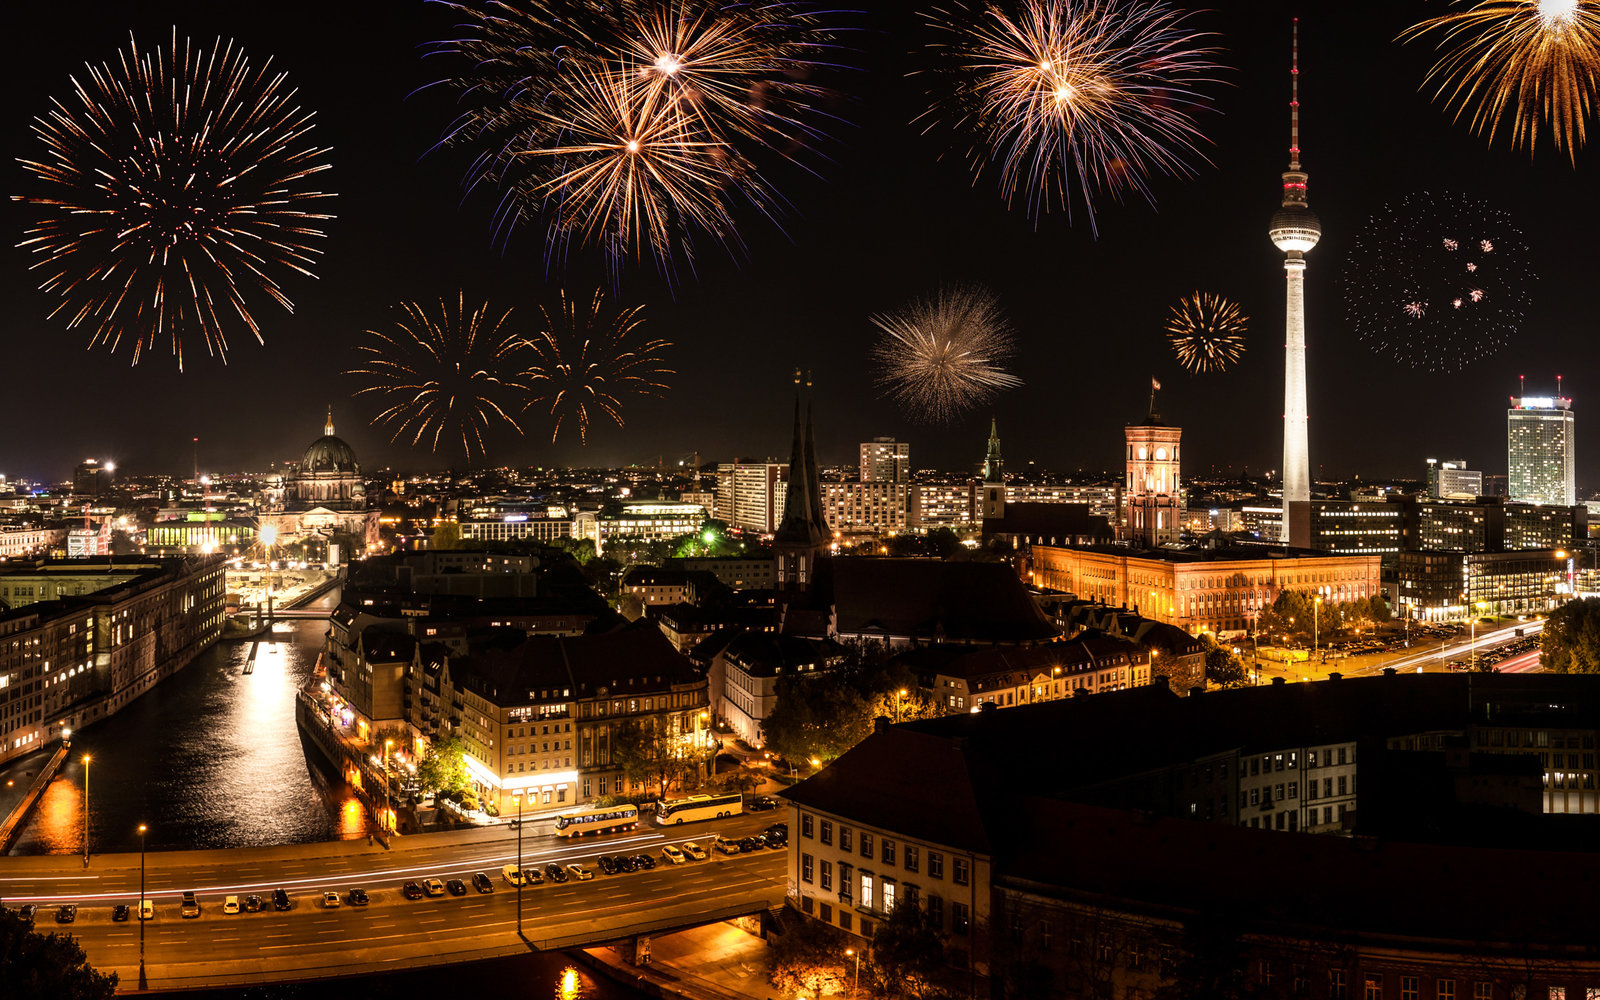 (GERMANY OUT) berlin with fireworks on new year's eve (Photo by Bildquelle/ullstein bild via Getty Images)